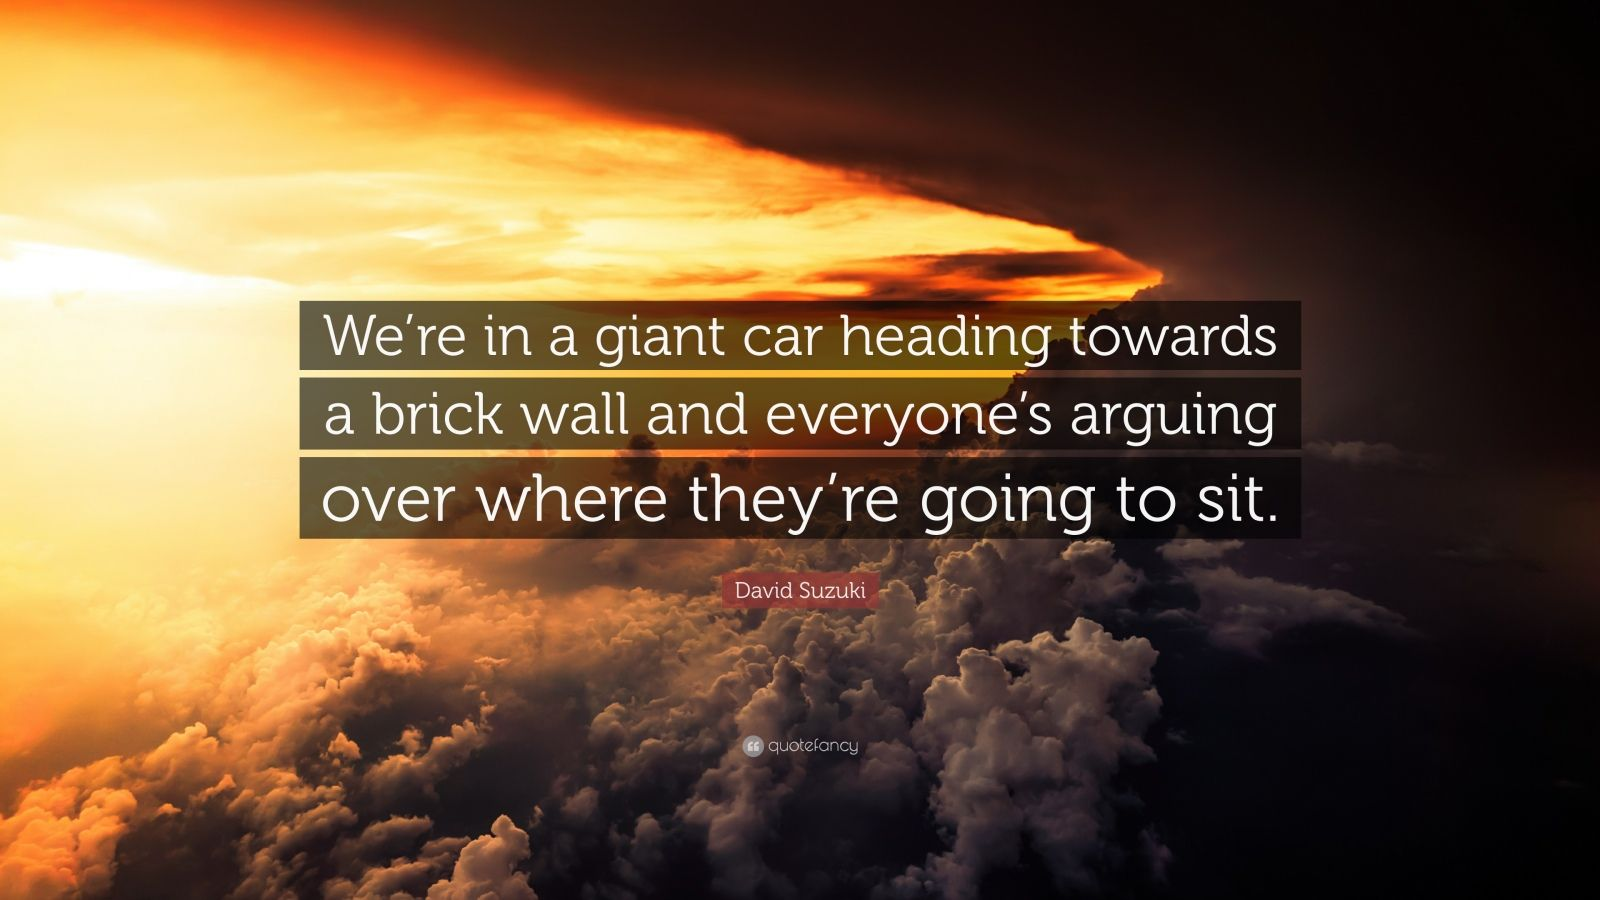 """David Suzuki Quote: """"We're in a giant car heading towards a brick wall and everyone's arguing over where they're going to sit."""""""